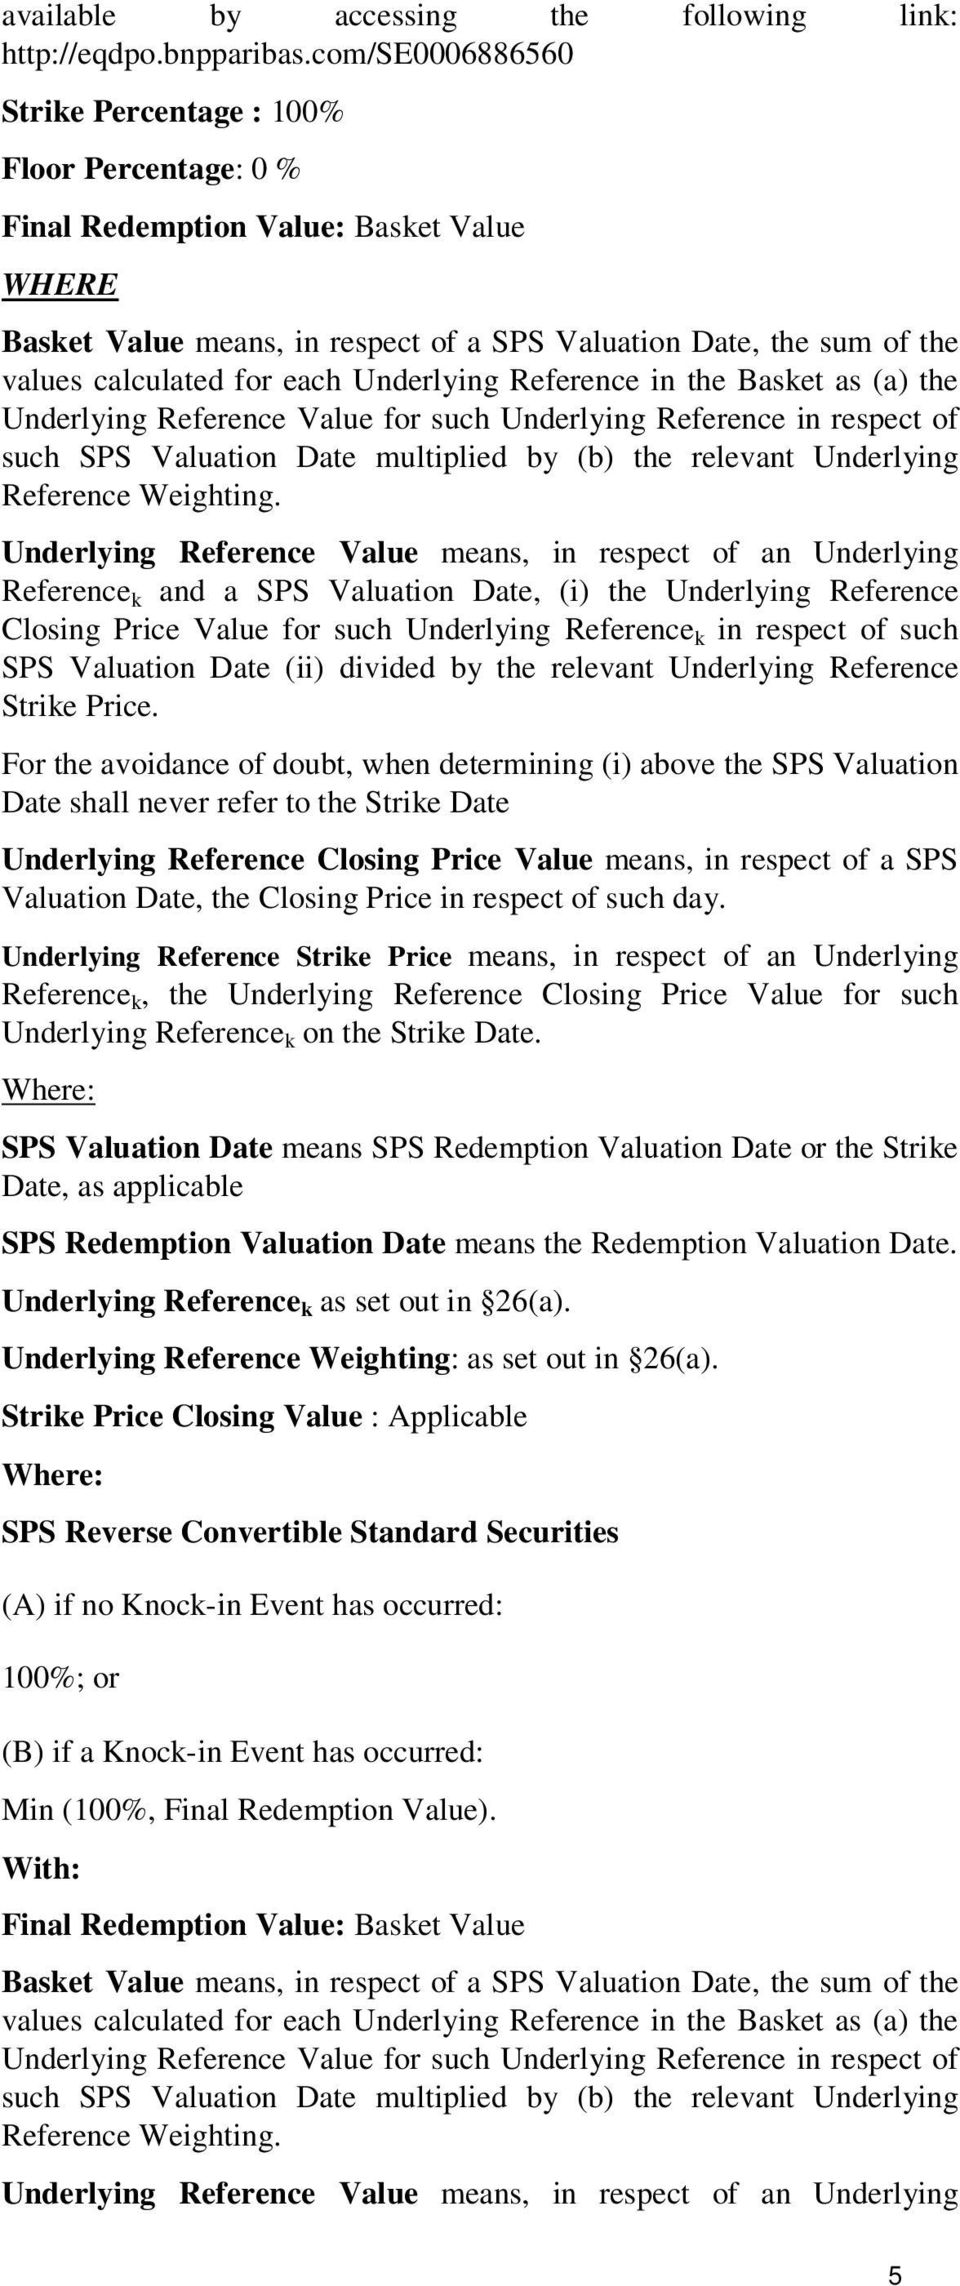 each Underlying Reference in the Basket as (a) the Underlying Reference Value for such Underlying Reference in respect of such SPS Valuation Date multiplied by (b) the relevant Underlying Reference